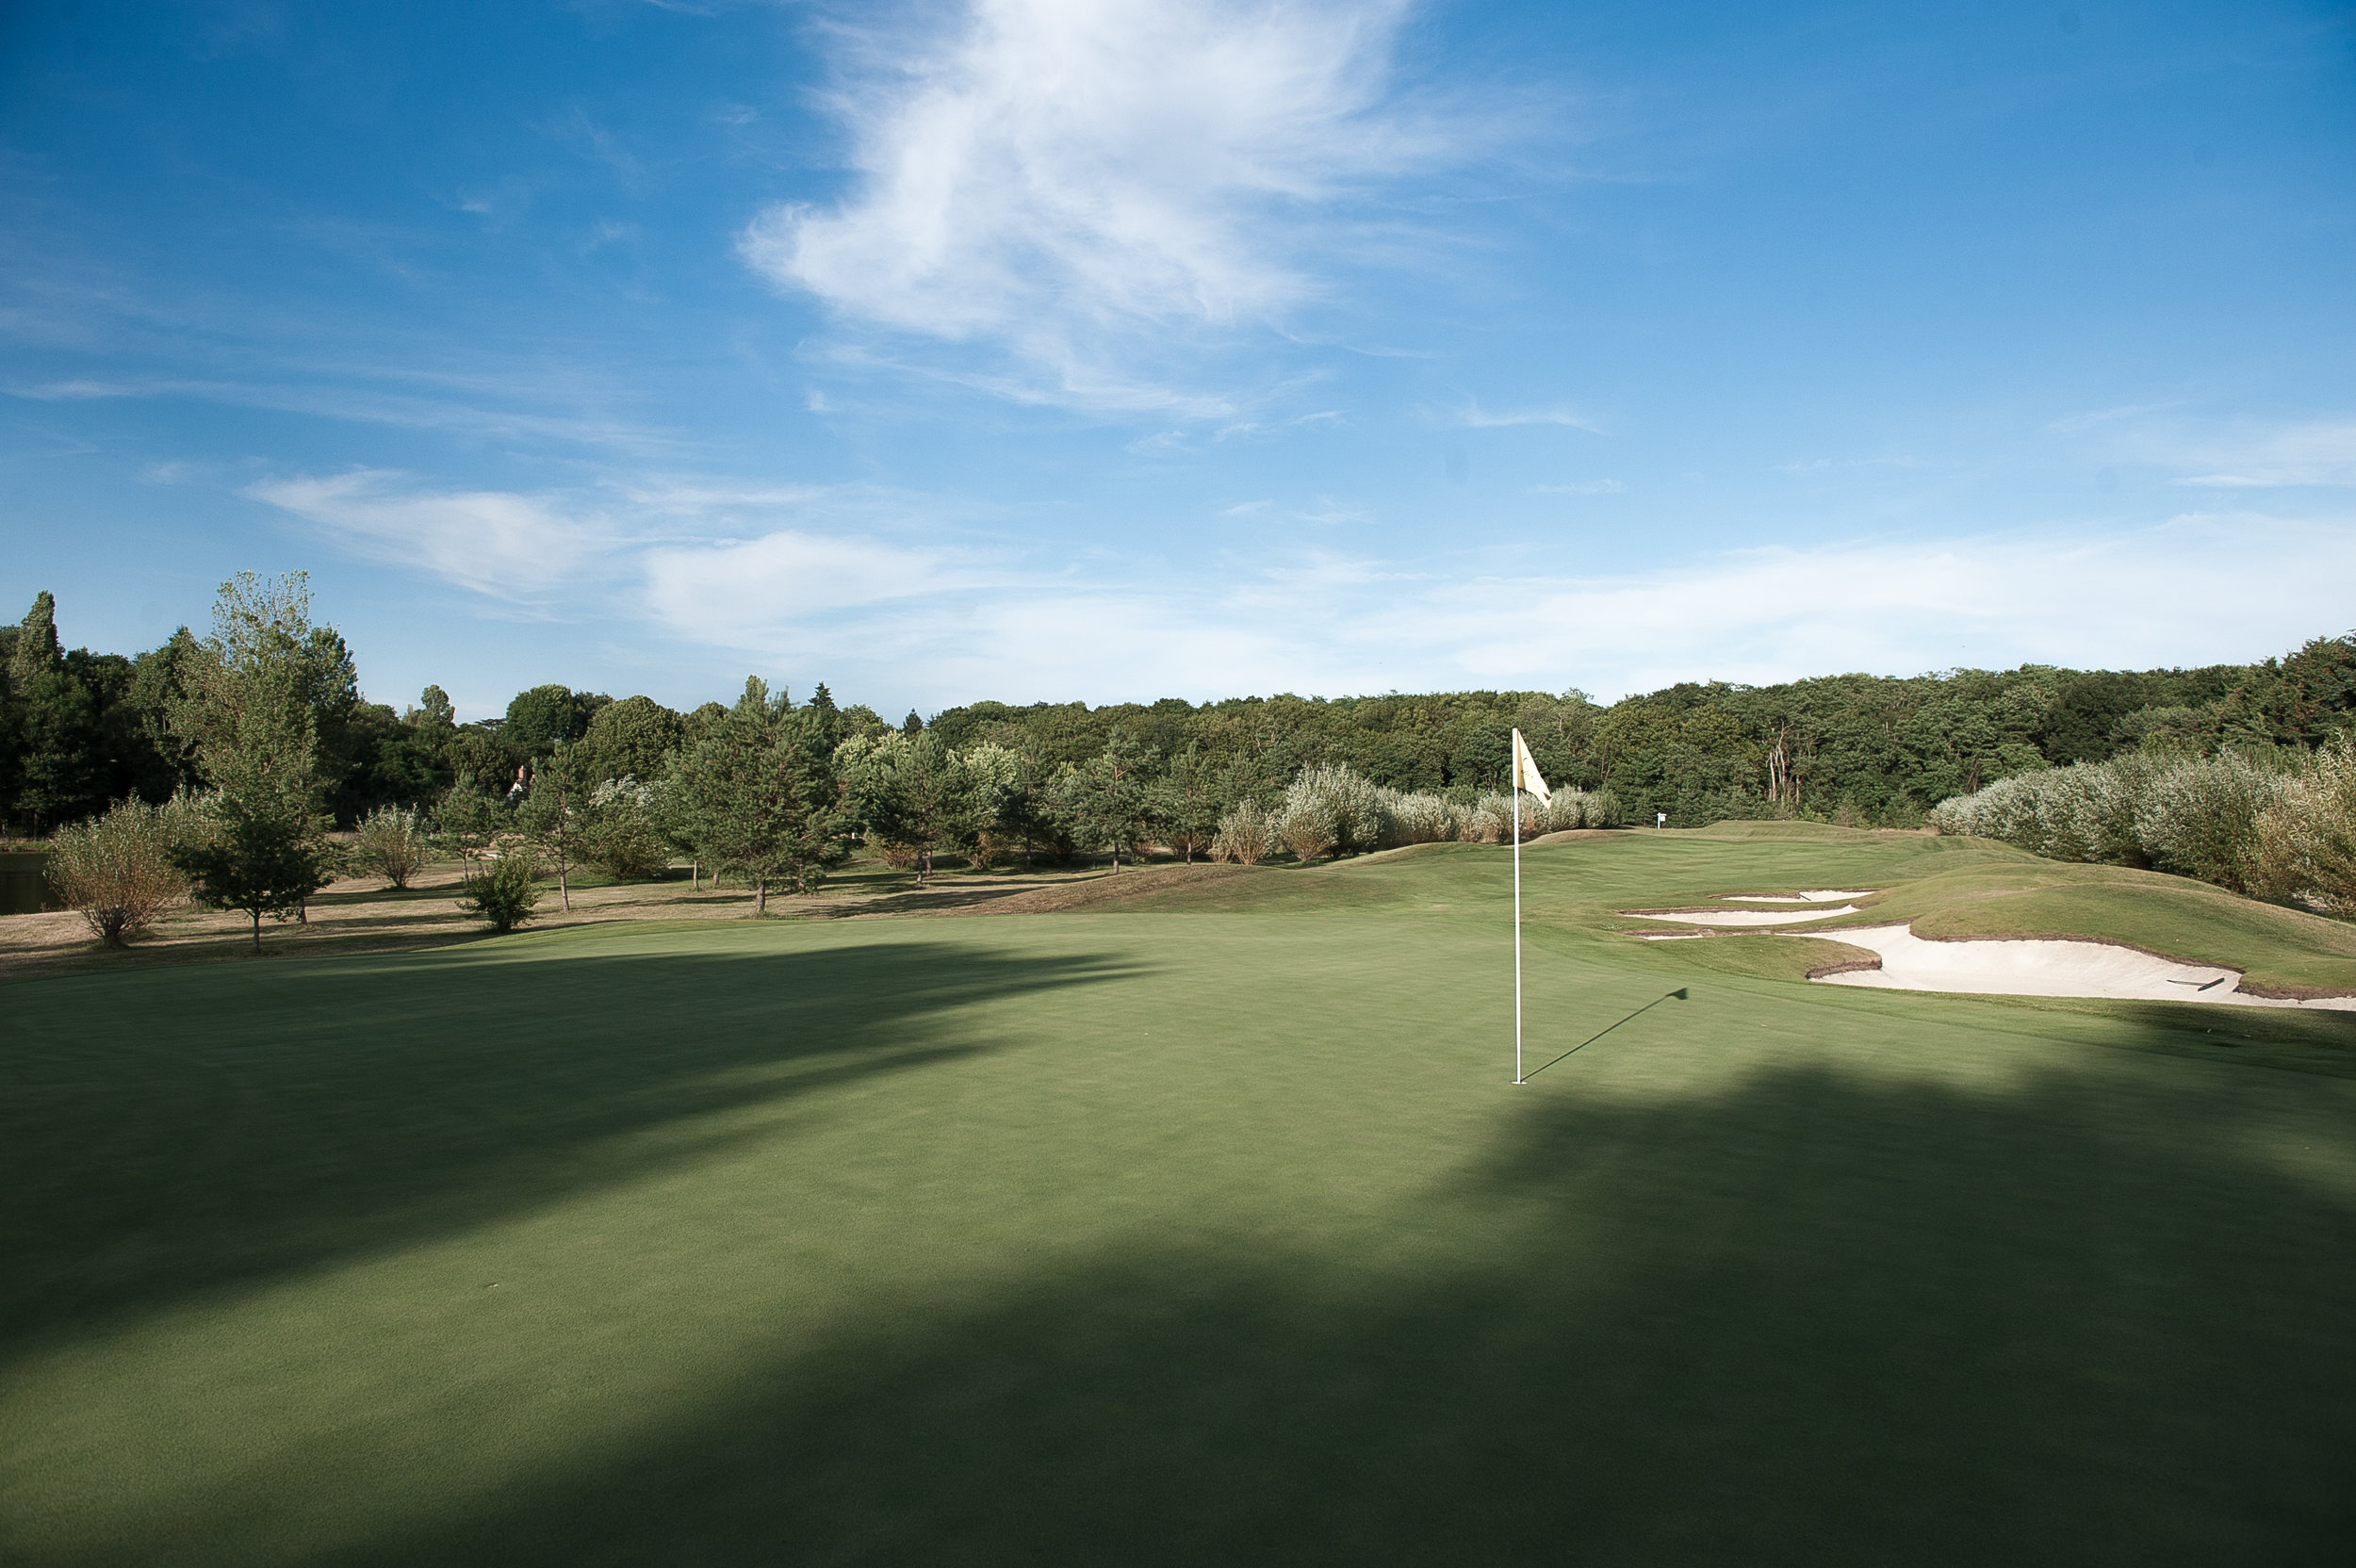 2nd-Hole-View-From-Green.jpg